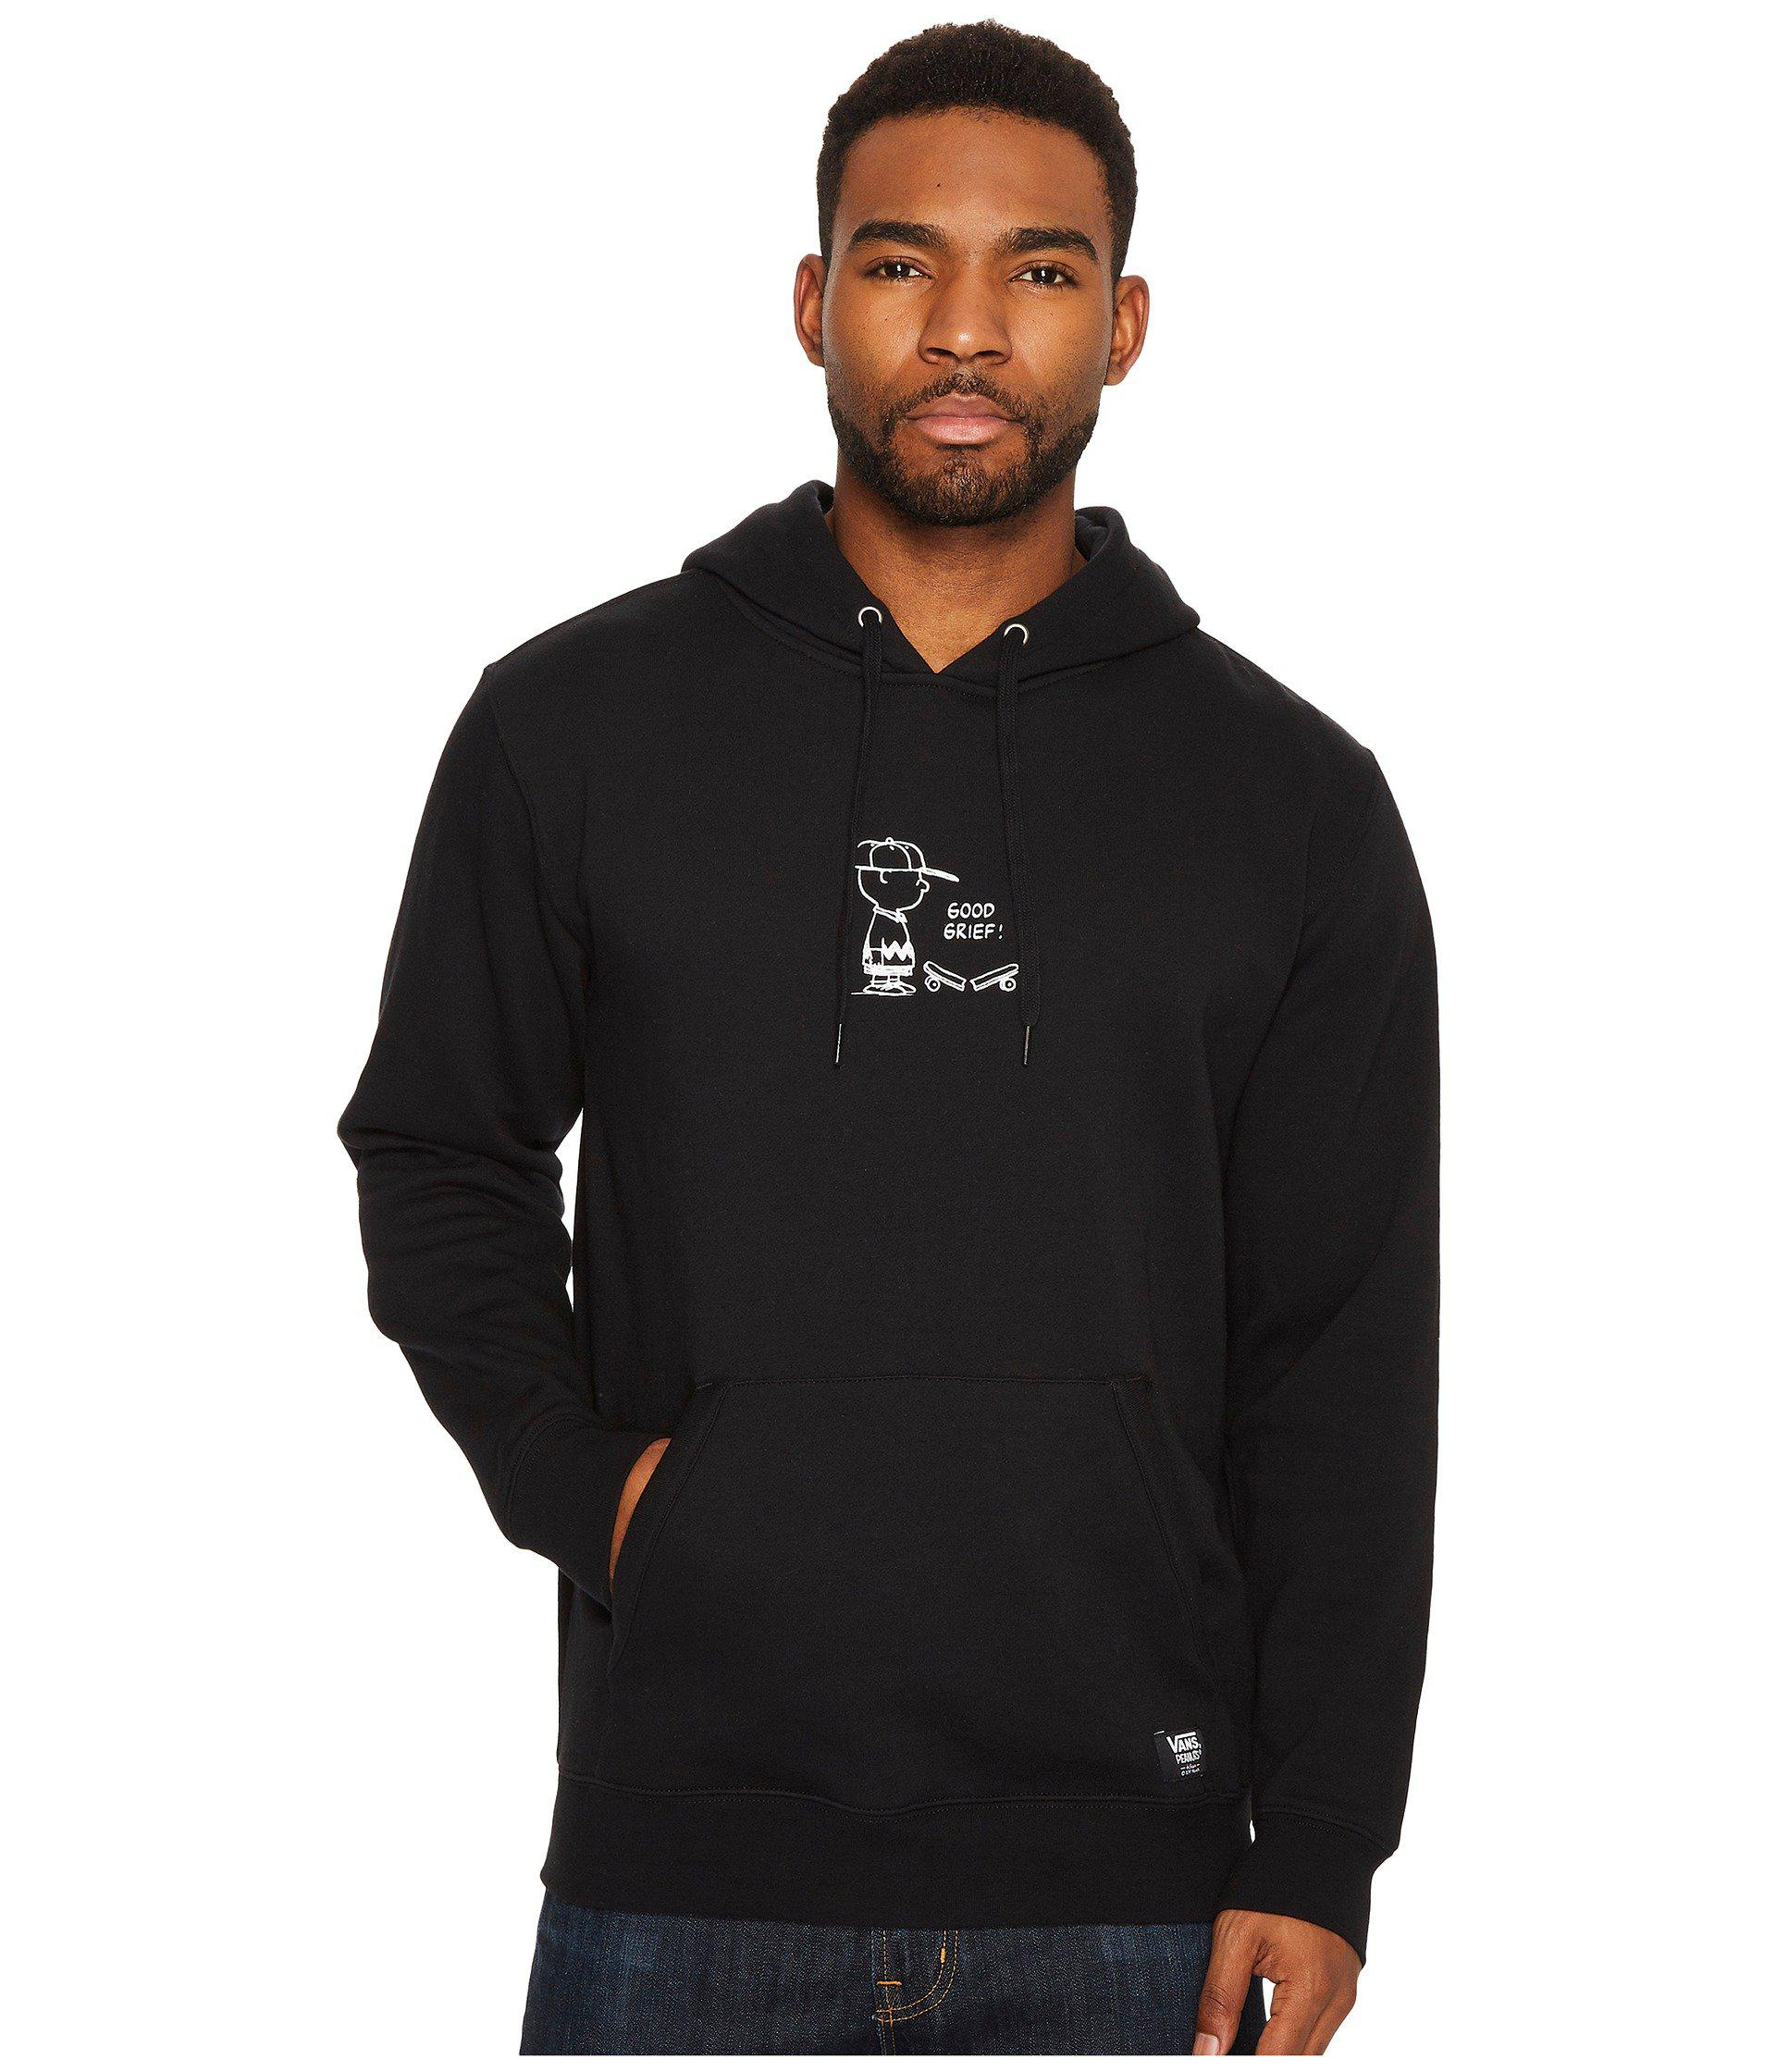 6a8875dd5ebd13 Lyst - Vans X Peanuts Good Grief Pullover Hoodie in Black for Men